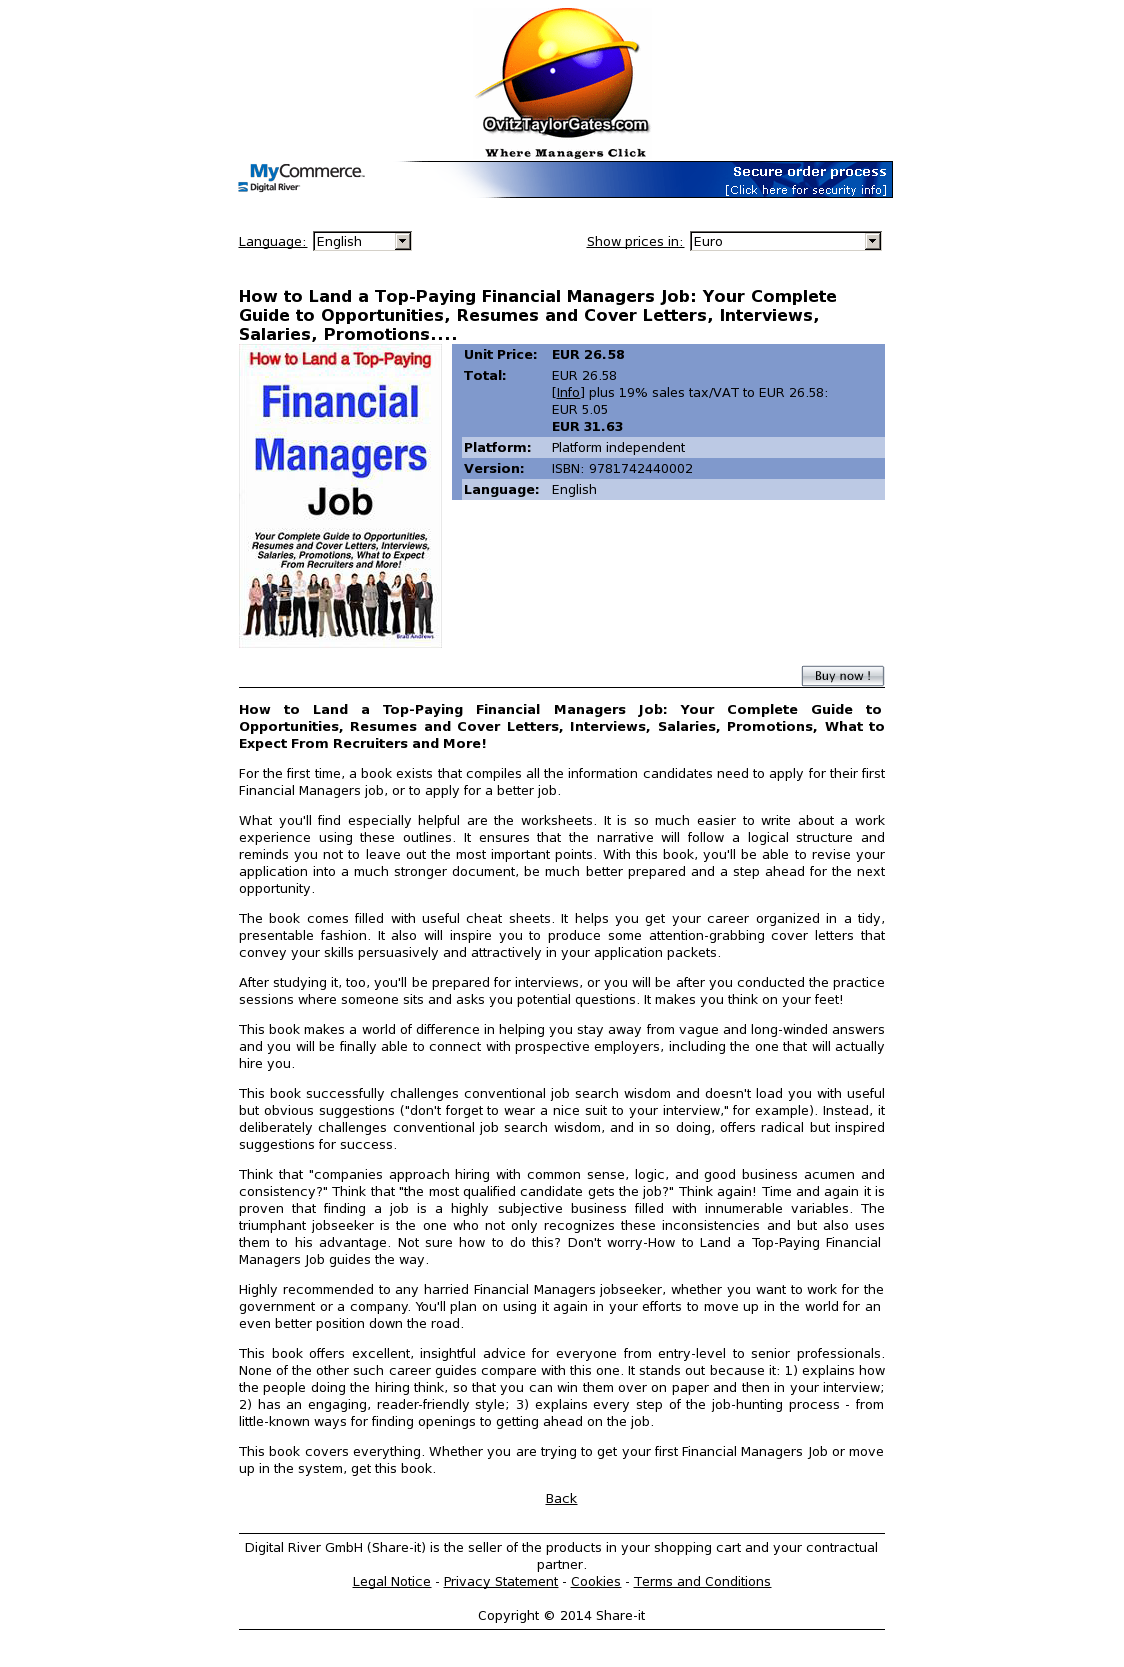 How to Land a Top-Paying Financial Managers Job: Your Complete Guide to Opportunities, Resumes and Cover Letters, Interviews, Salaries, Promotions....